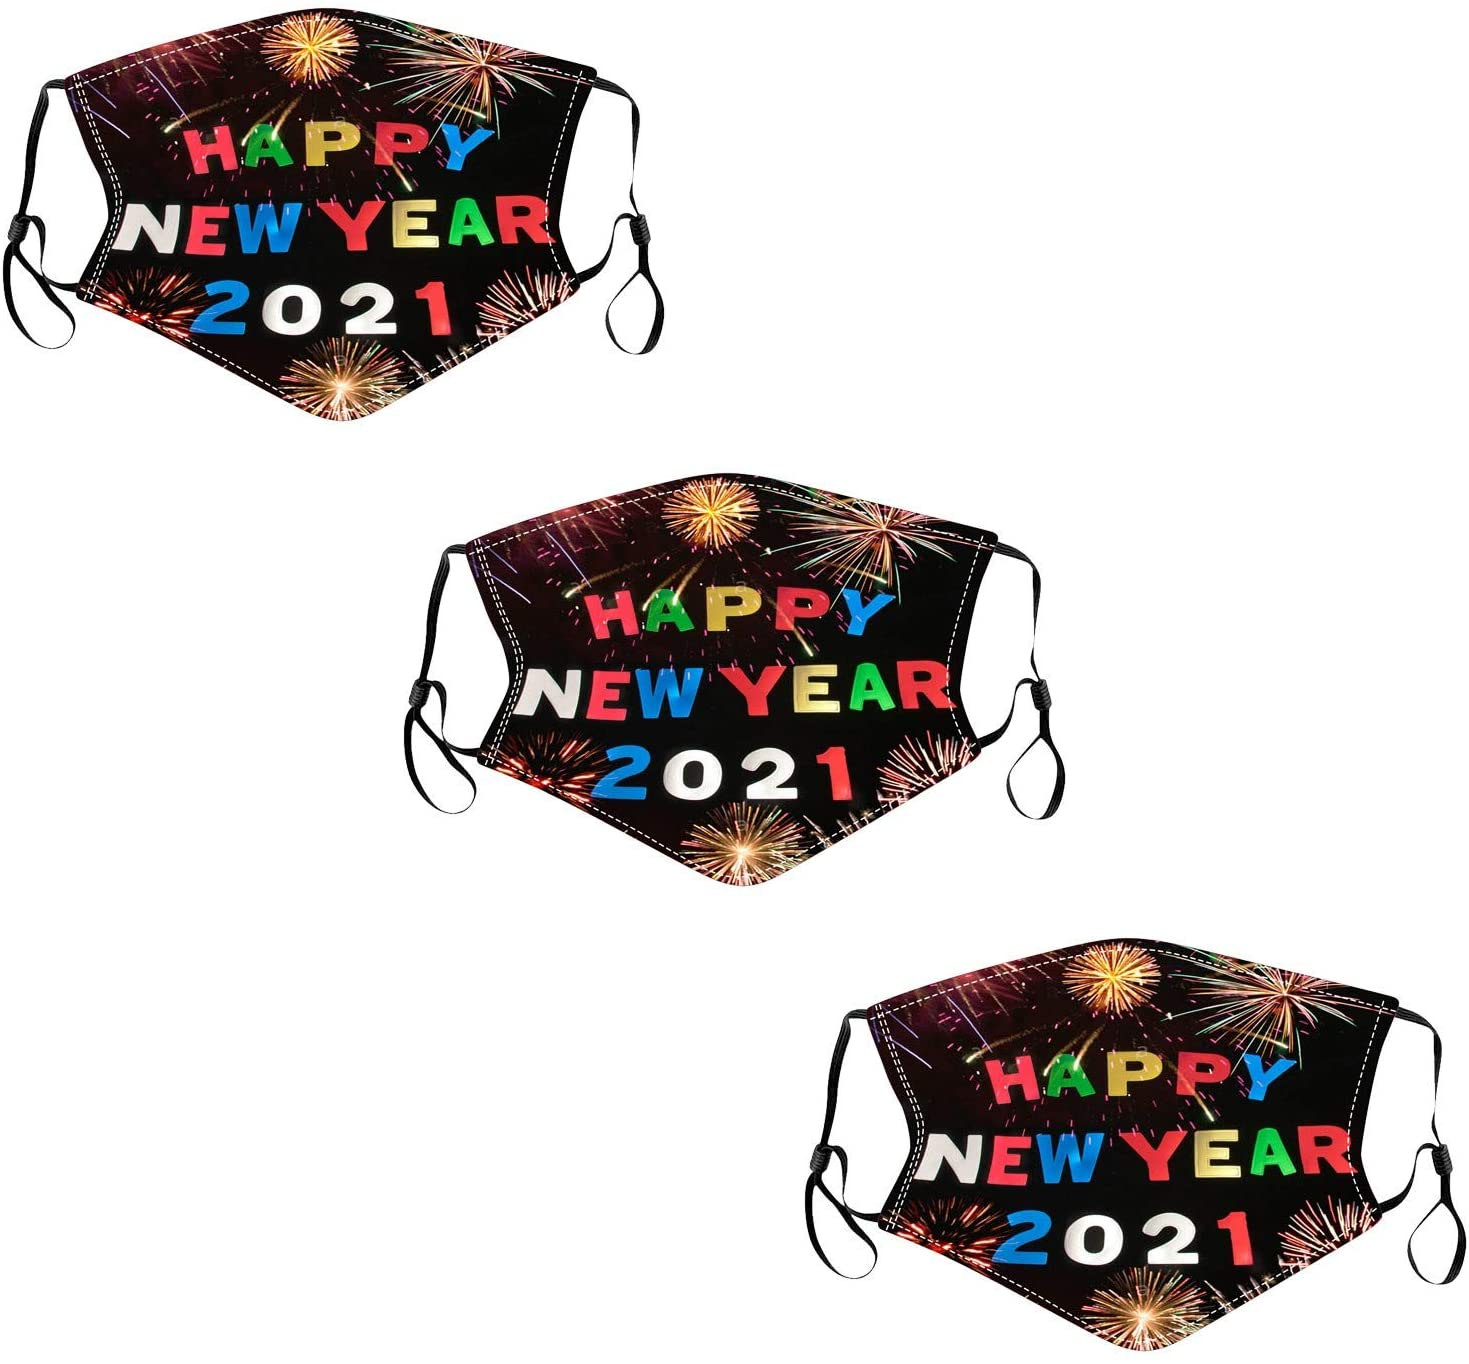 Usblom 3PCS Adult New Year's Day 2021 Printed Face Bandana_Covering_MASK Dust-Proof Washable Cotton Bandana with 3PCS Filters for Men and Women (J)